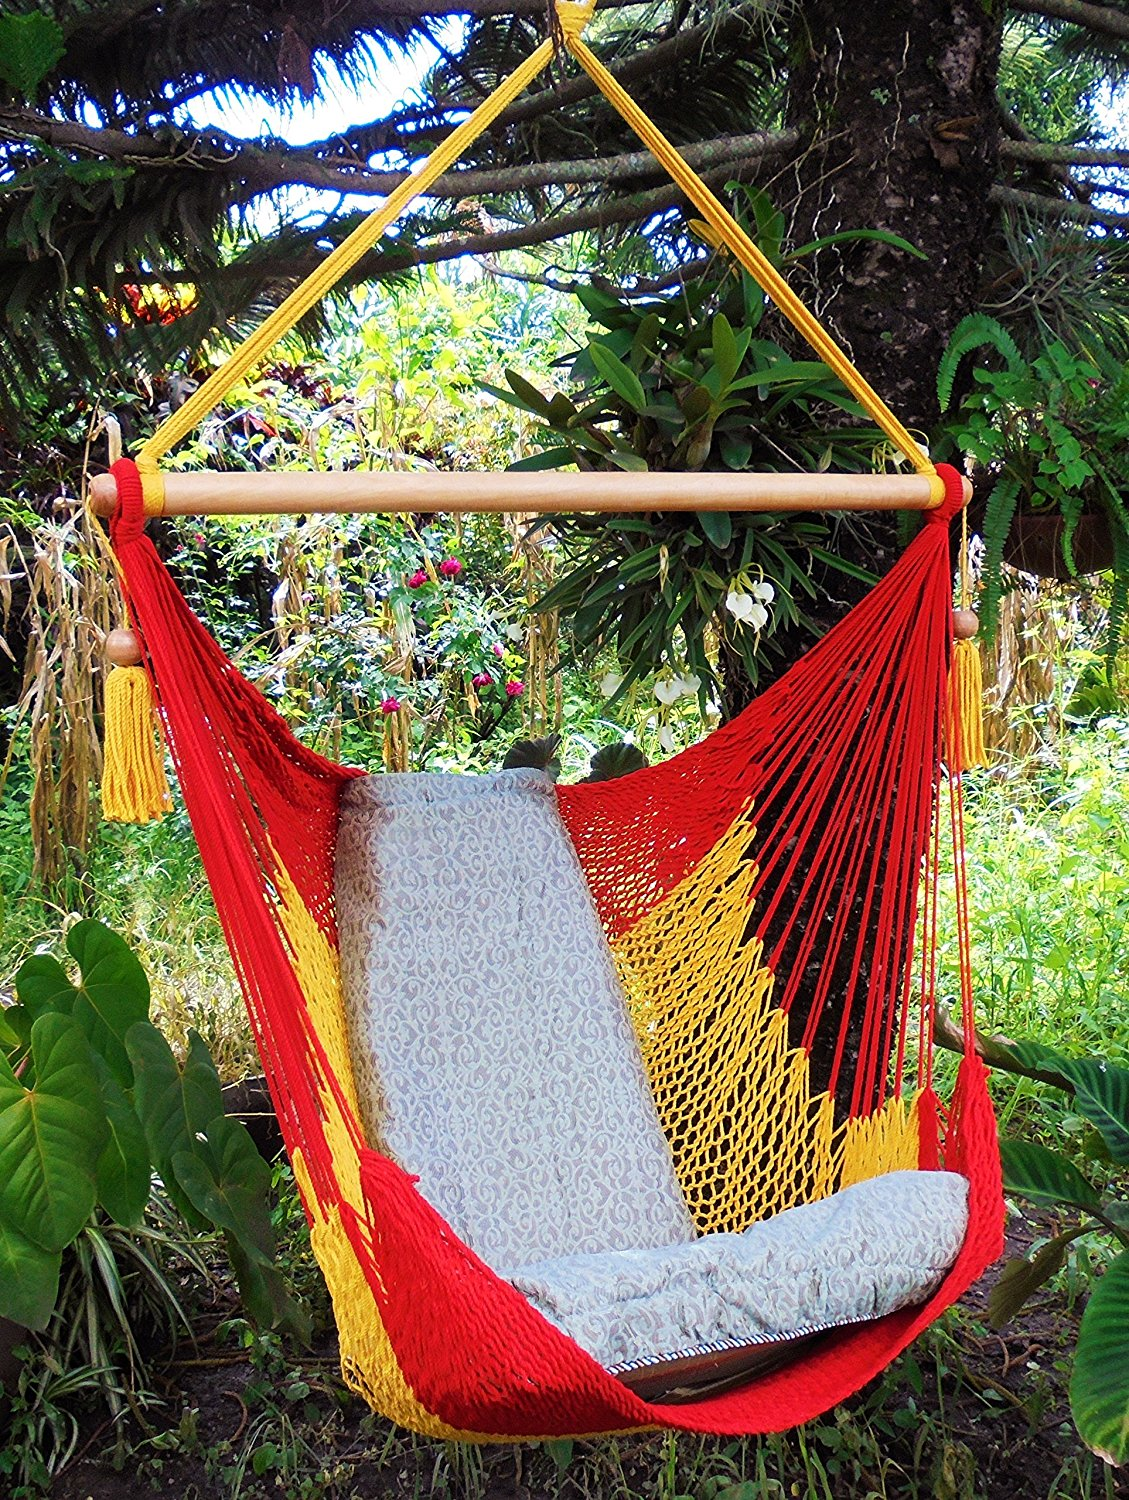 jchcra jumbo chairs rainbow cheap product hammock htm caribbean chair p